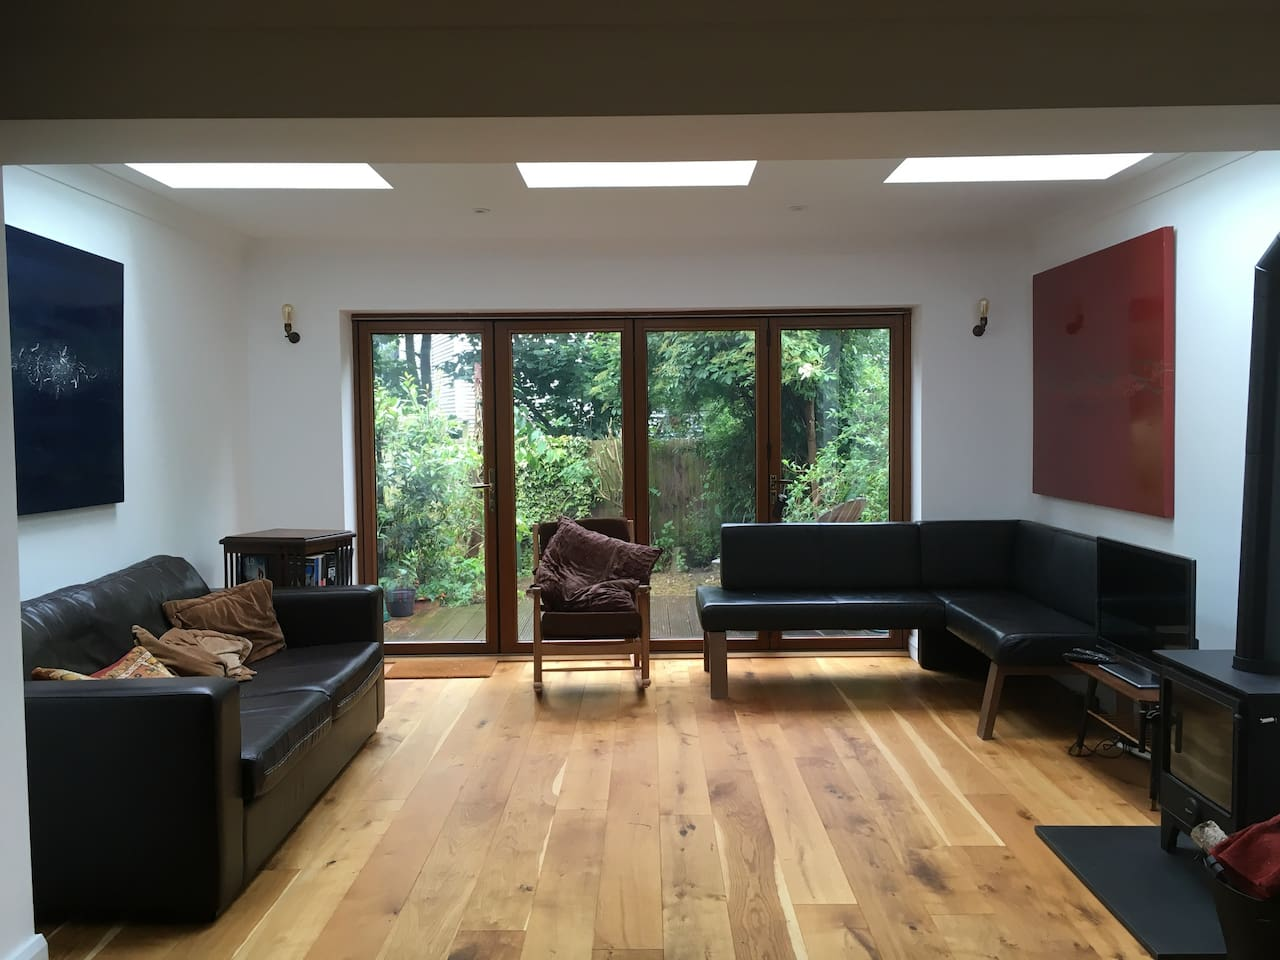 Light filled living room with woodburning stove and tv, opens on to wooden deck and garden.